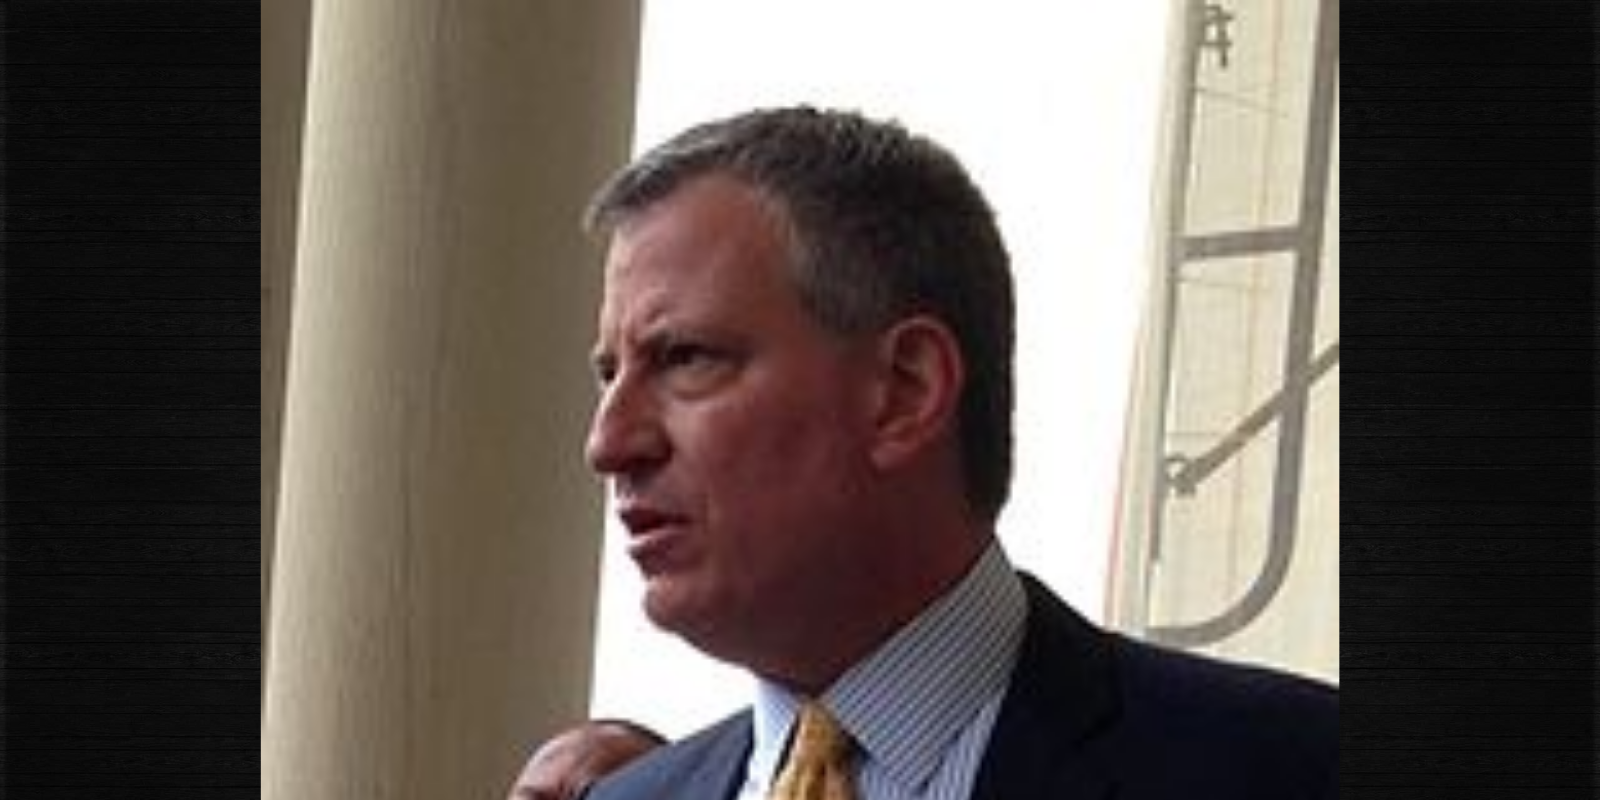 WATCH: De Blasio threatens to send NYPD to warn people after 'hurtful' comments